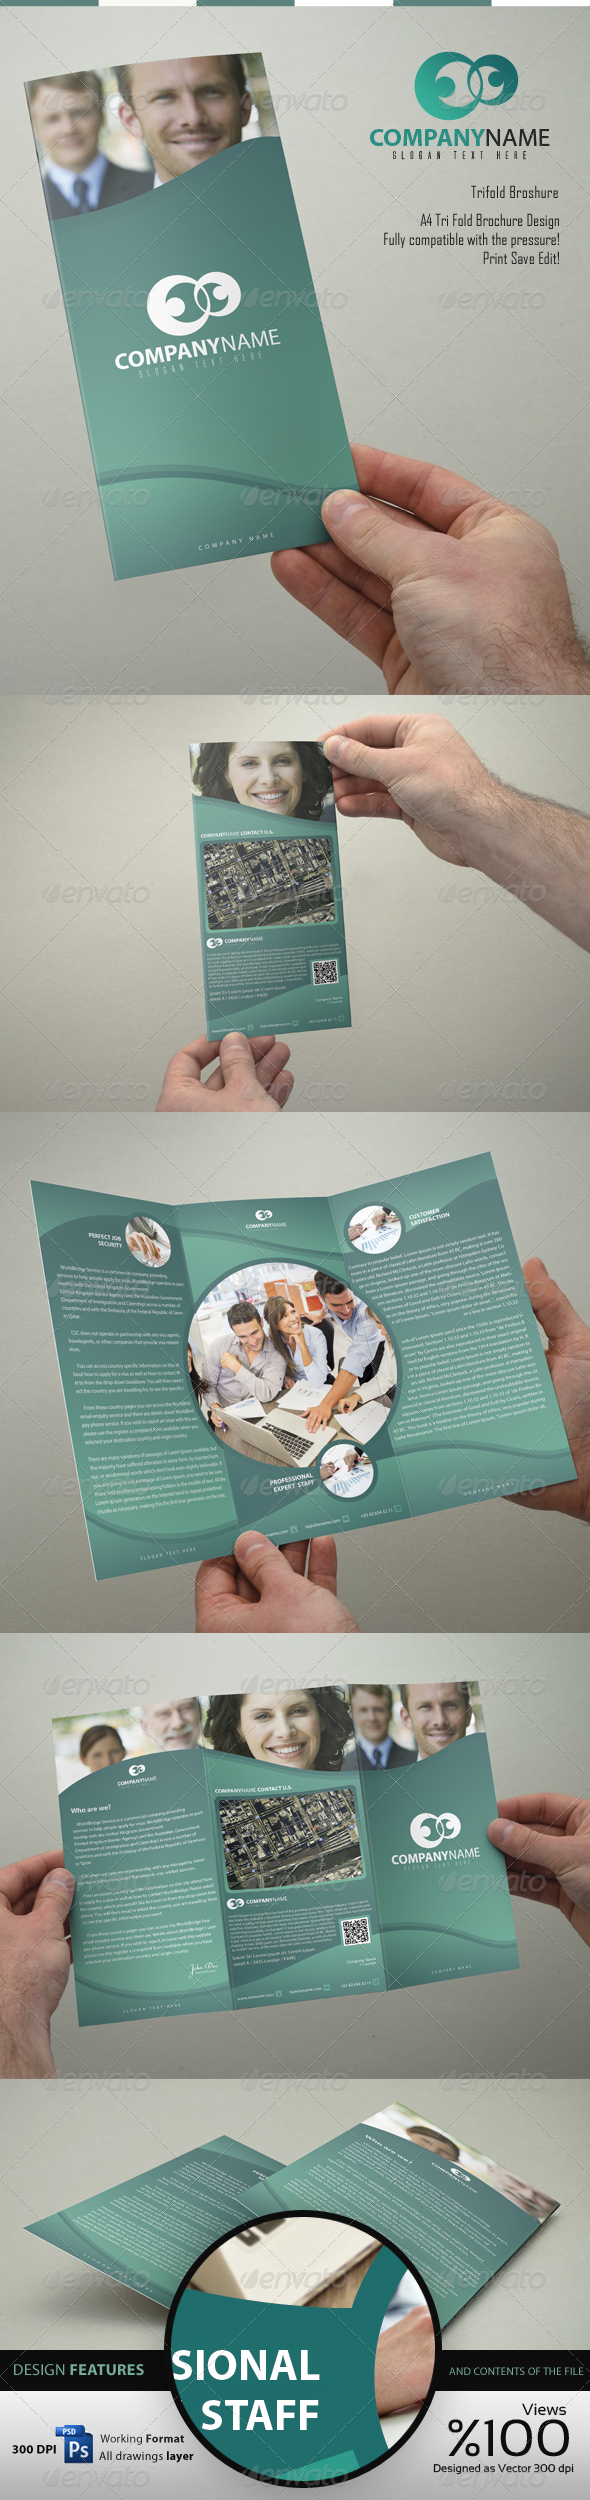 GraphicRiver Company Trifold 1 Brochure Design 4771958